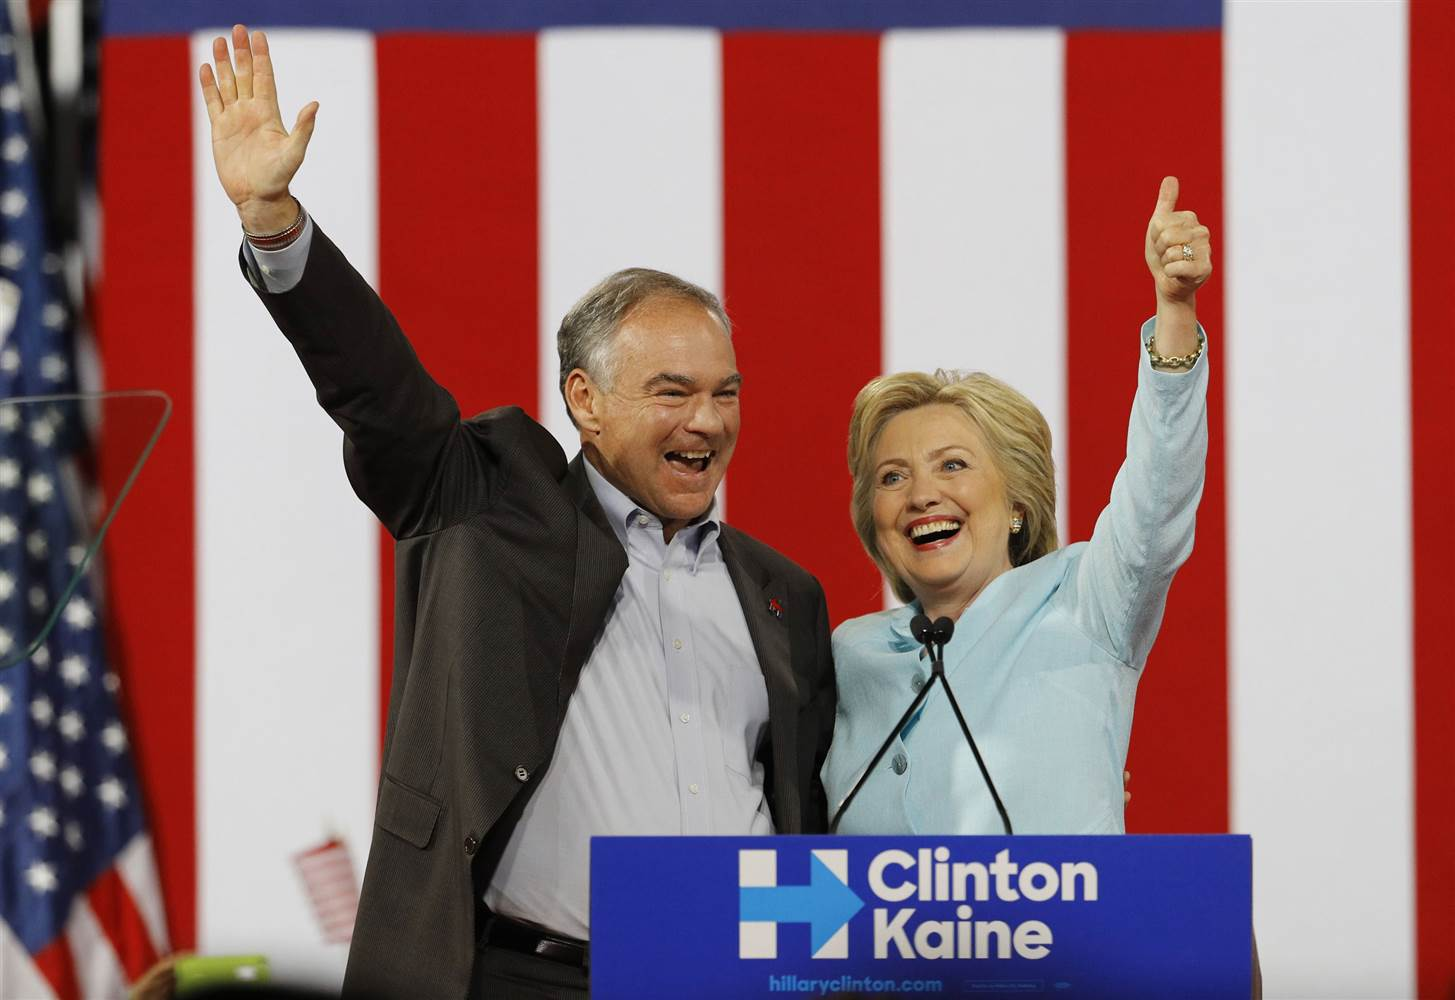 Hillary Clinton and Tim Kaine July 2016 at DNC